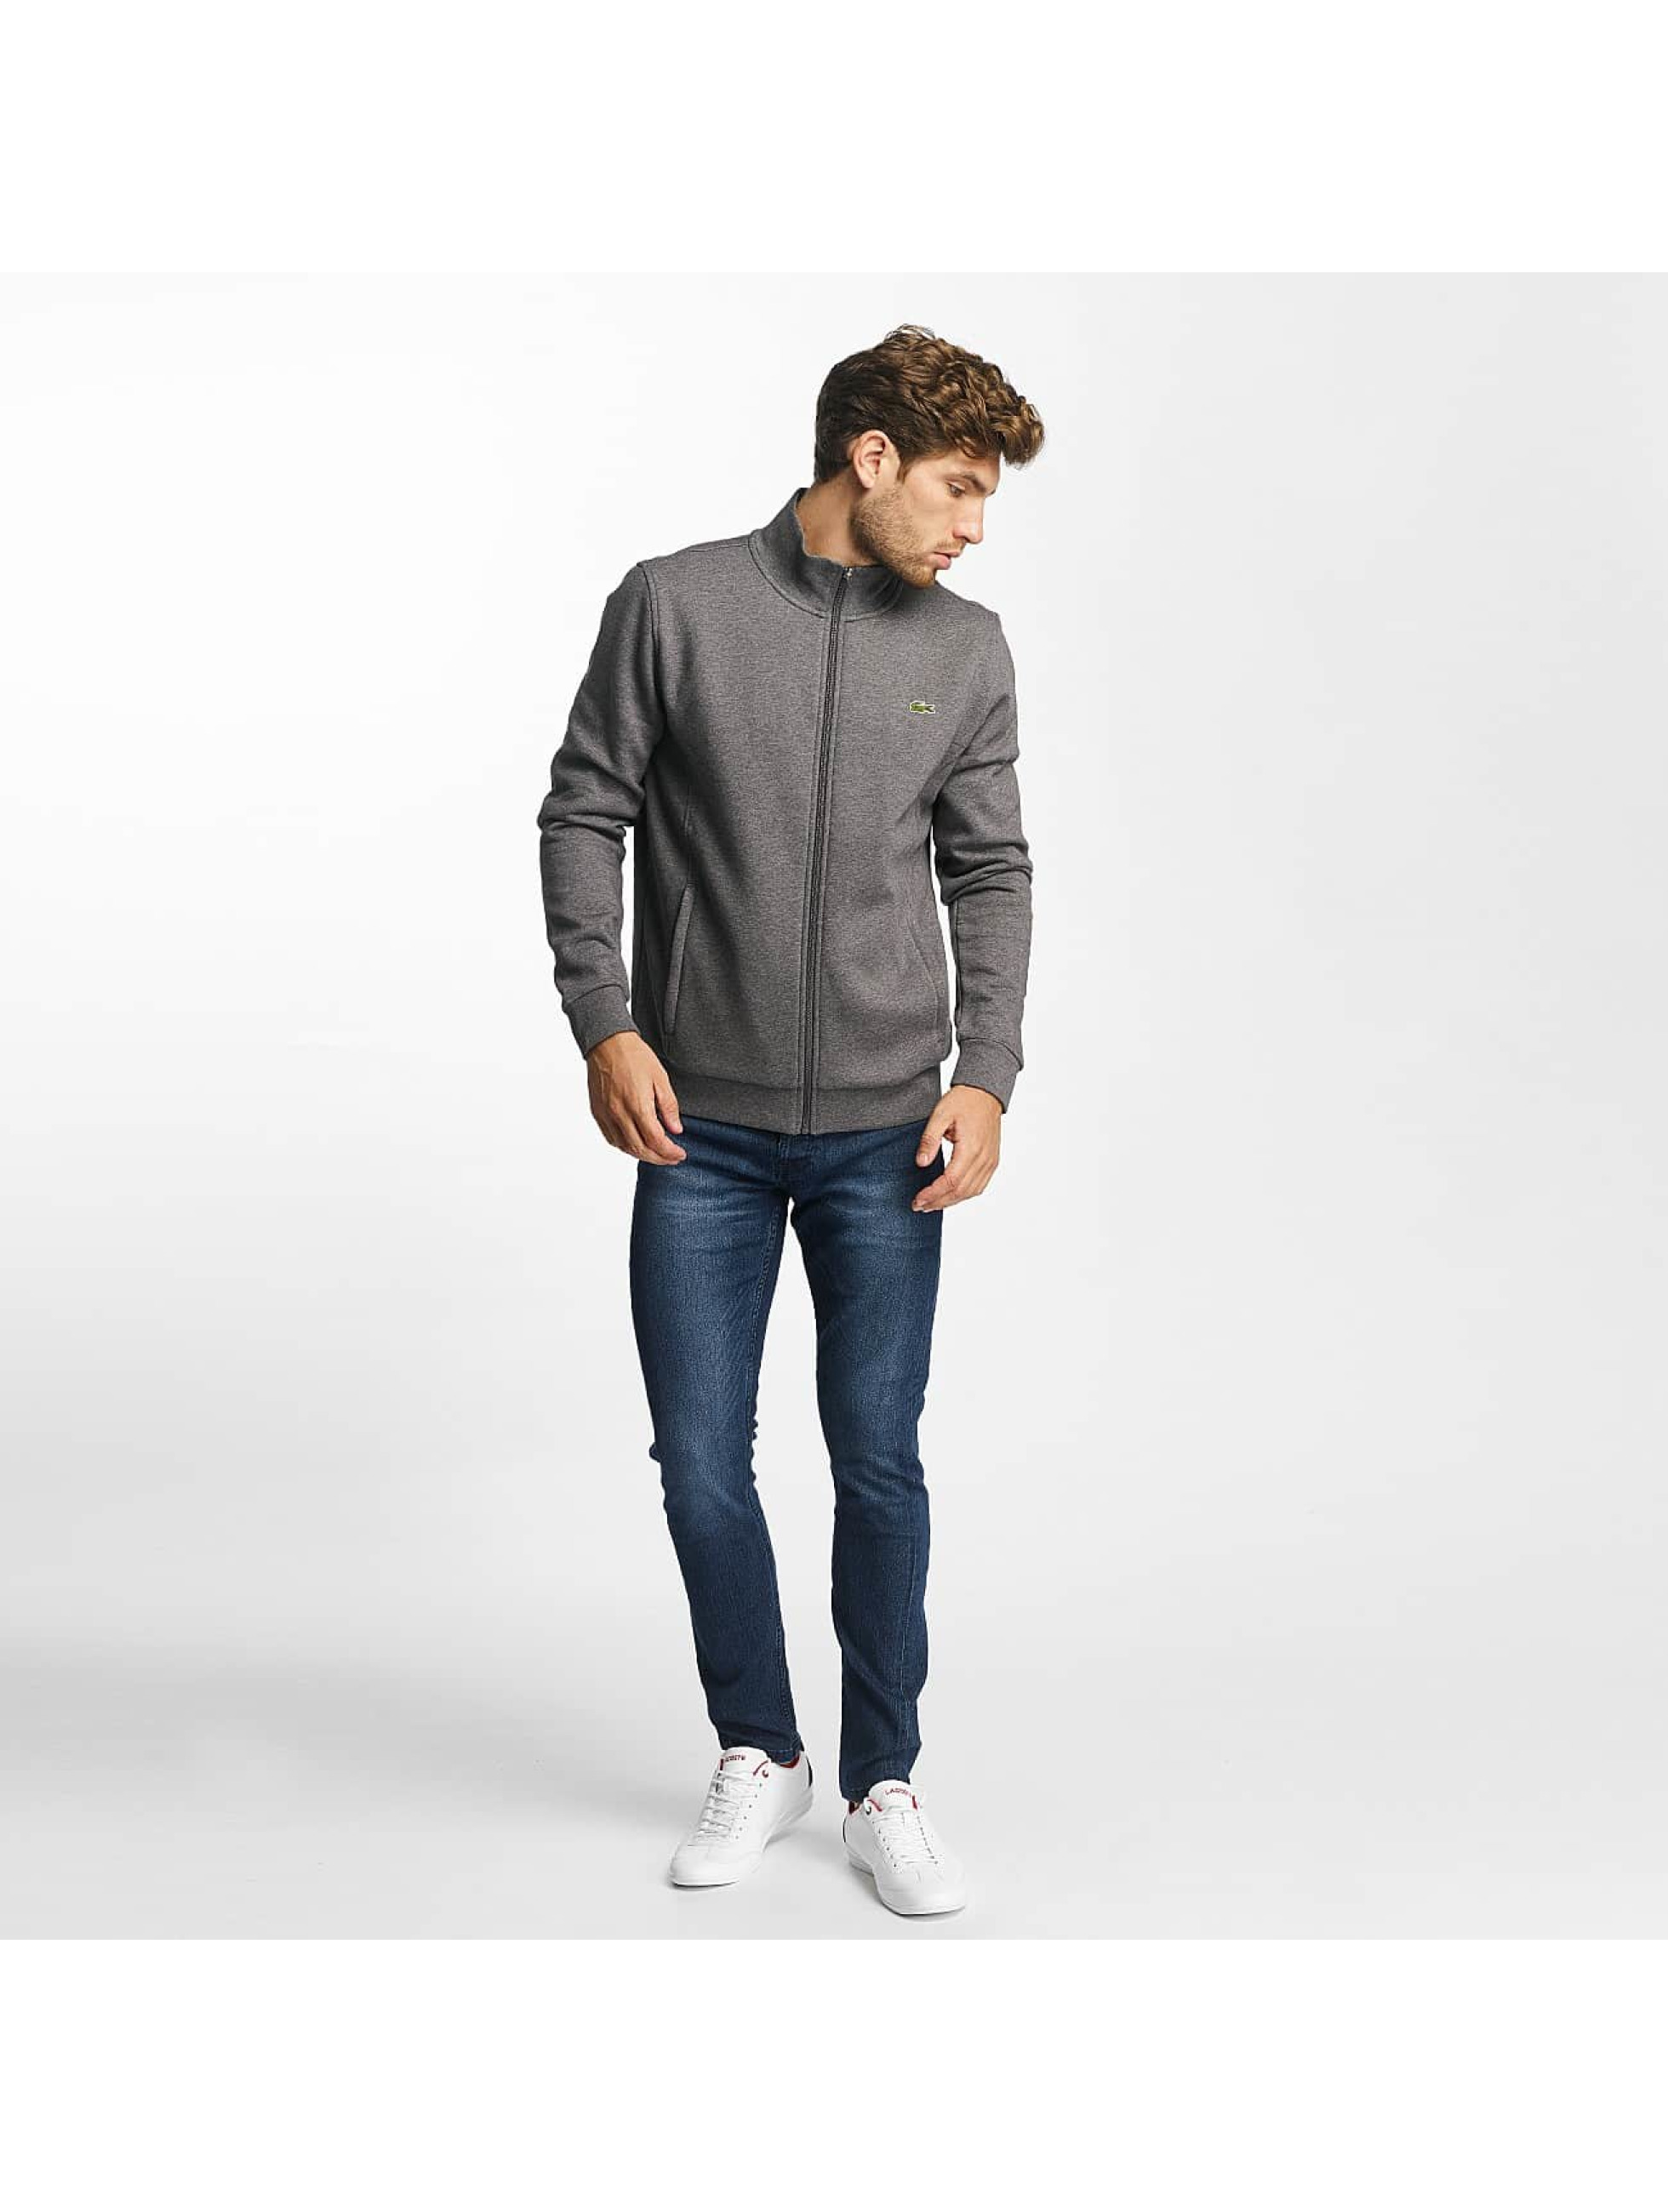 Lacoste Classic Lightweight Jacket Pitch gray